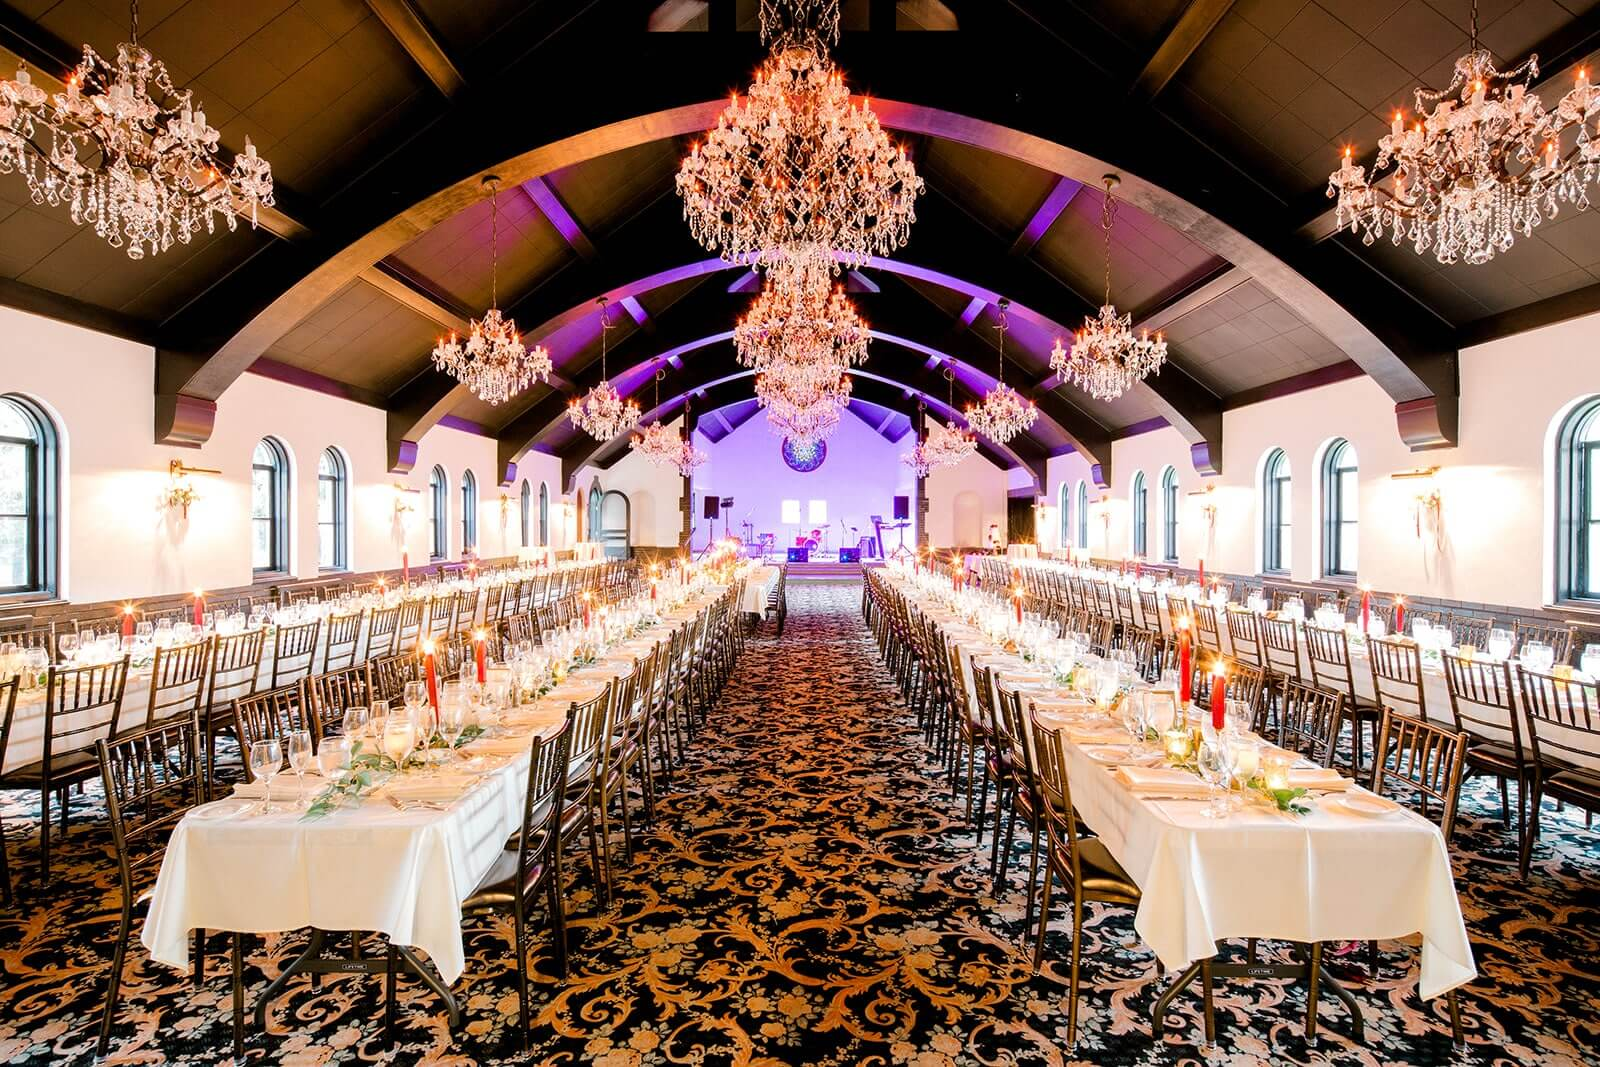 How Much Does My Wedding Venue Matter?